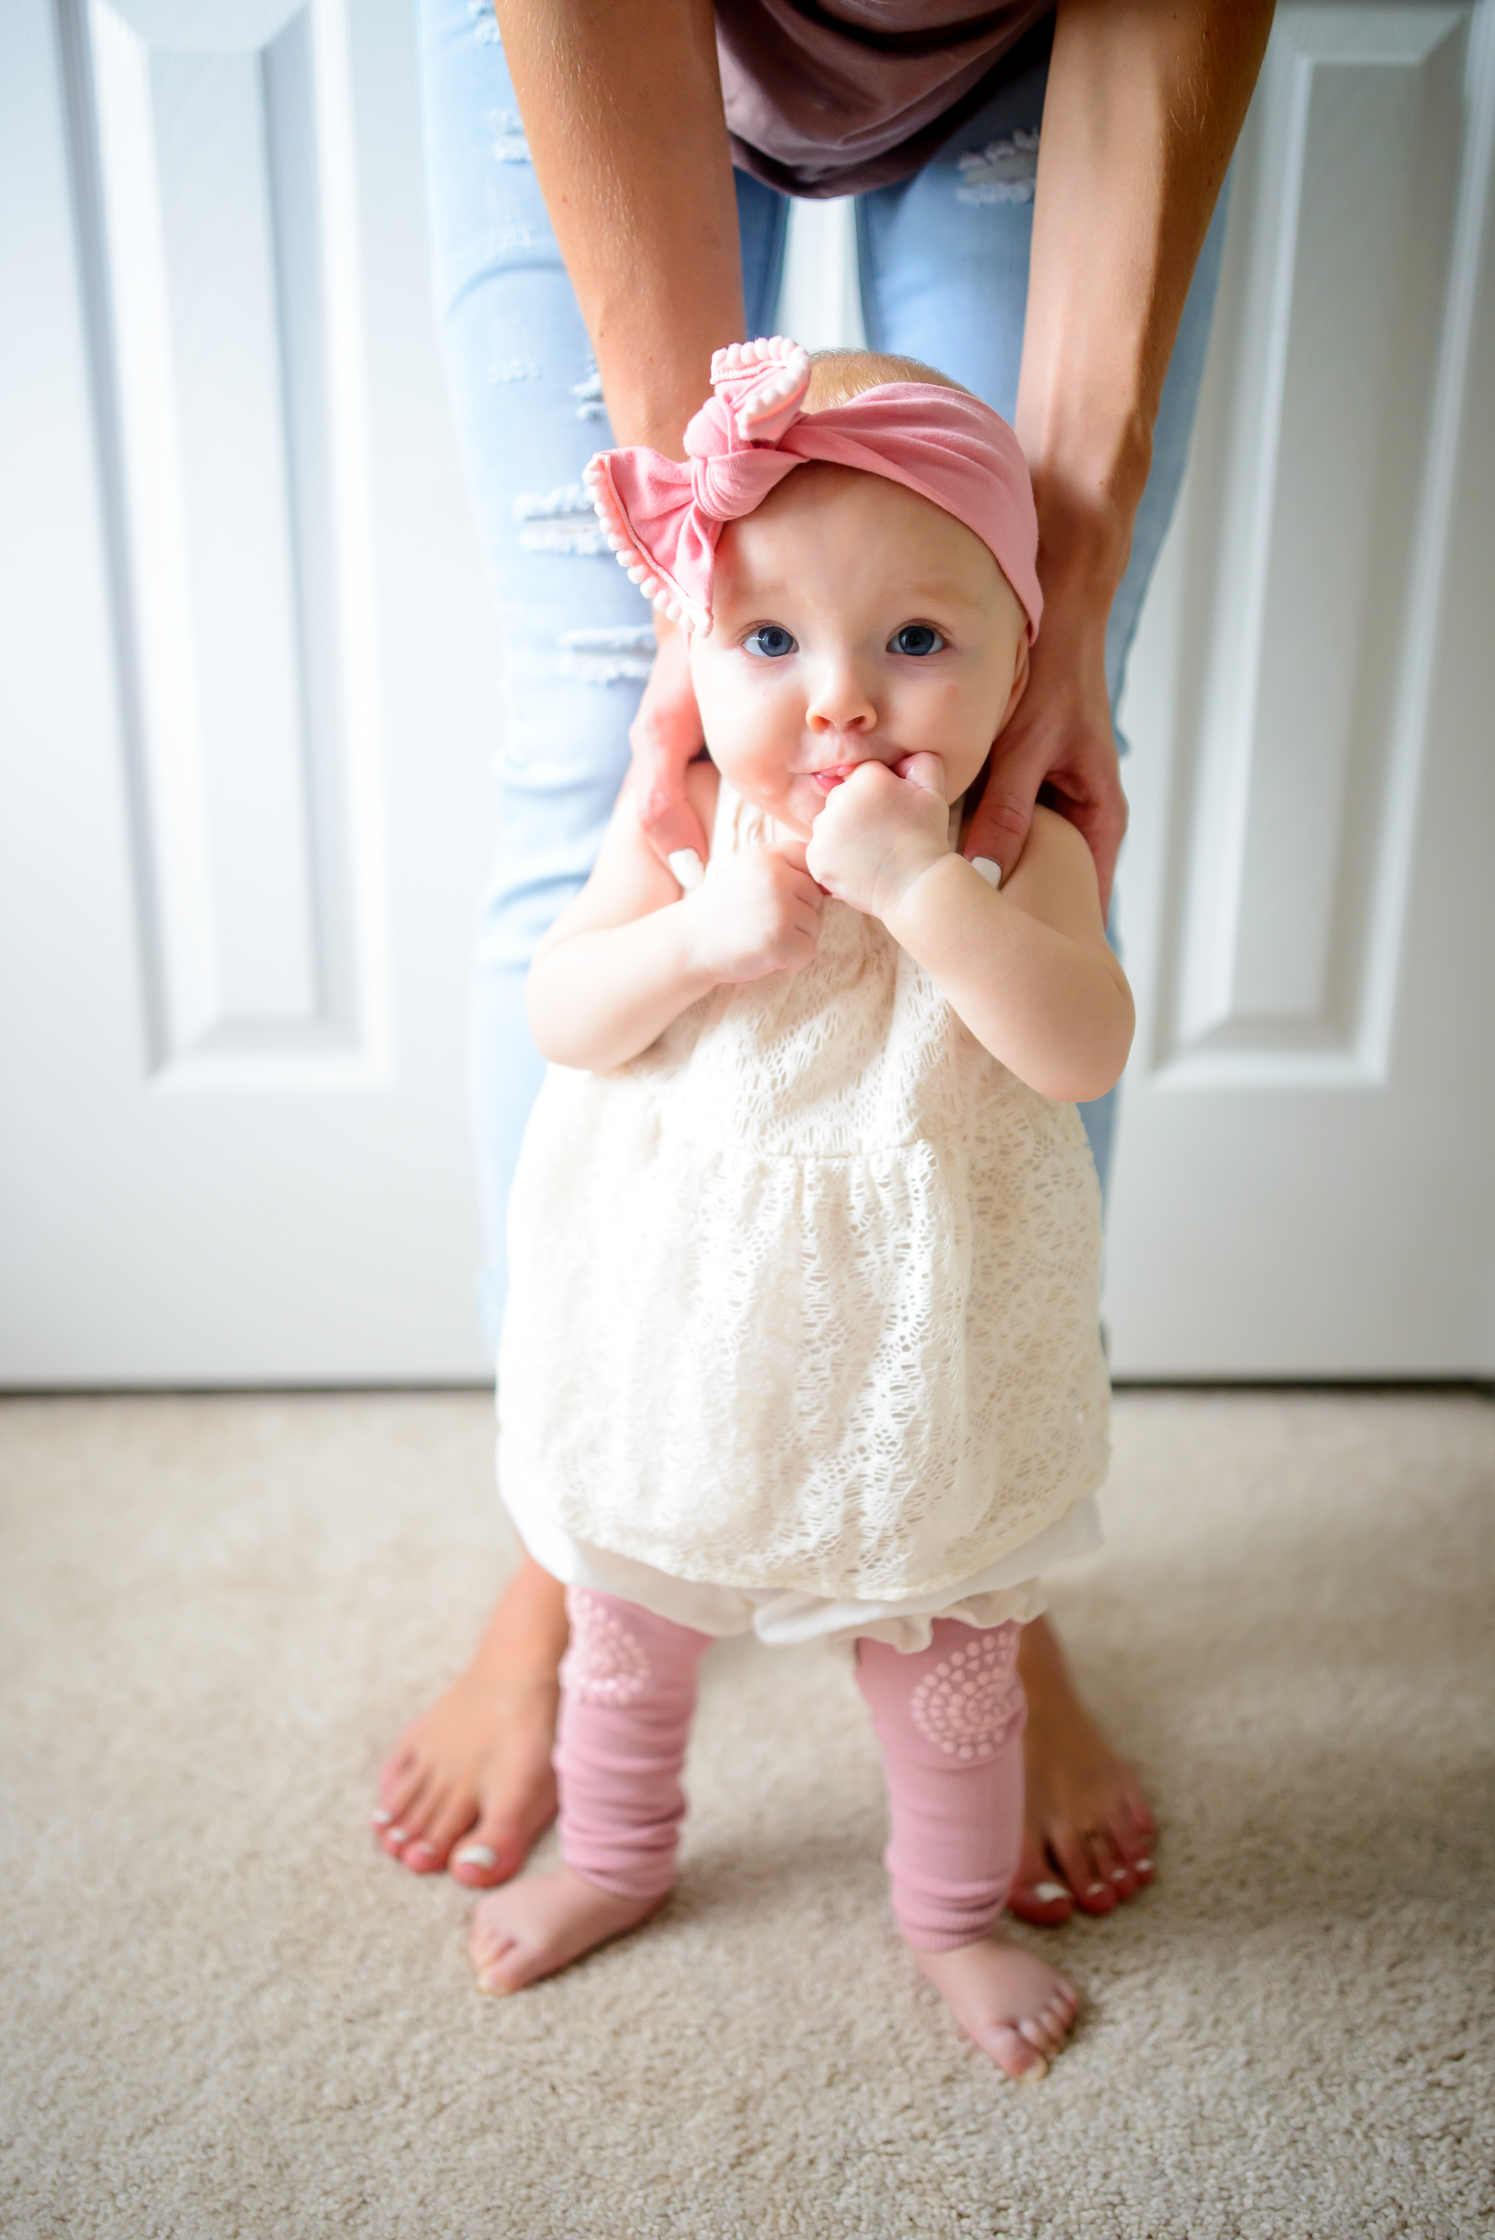 5 Months, Baby Avery - Hello Ivory Rose